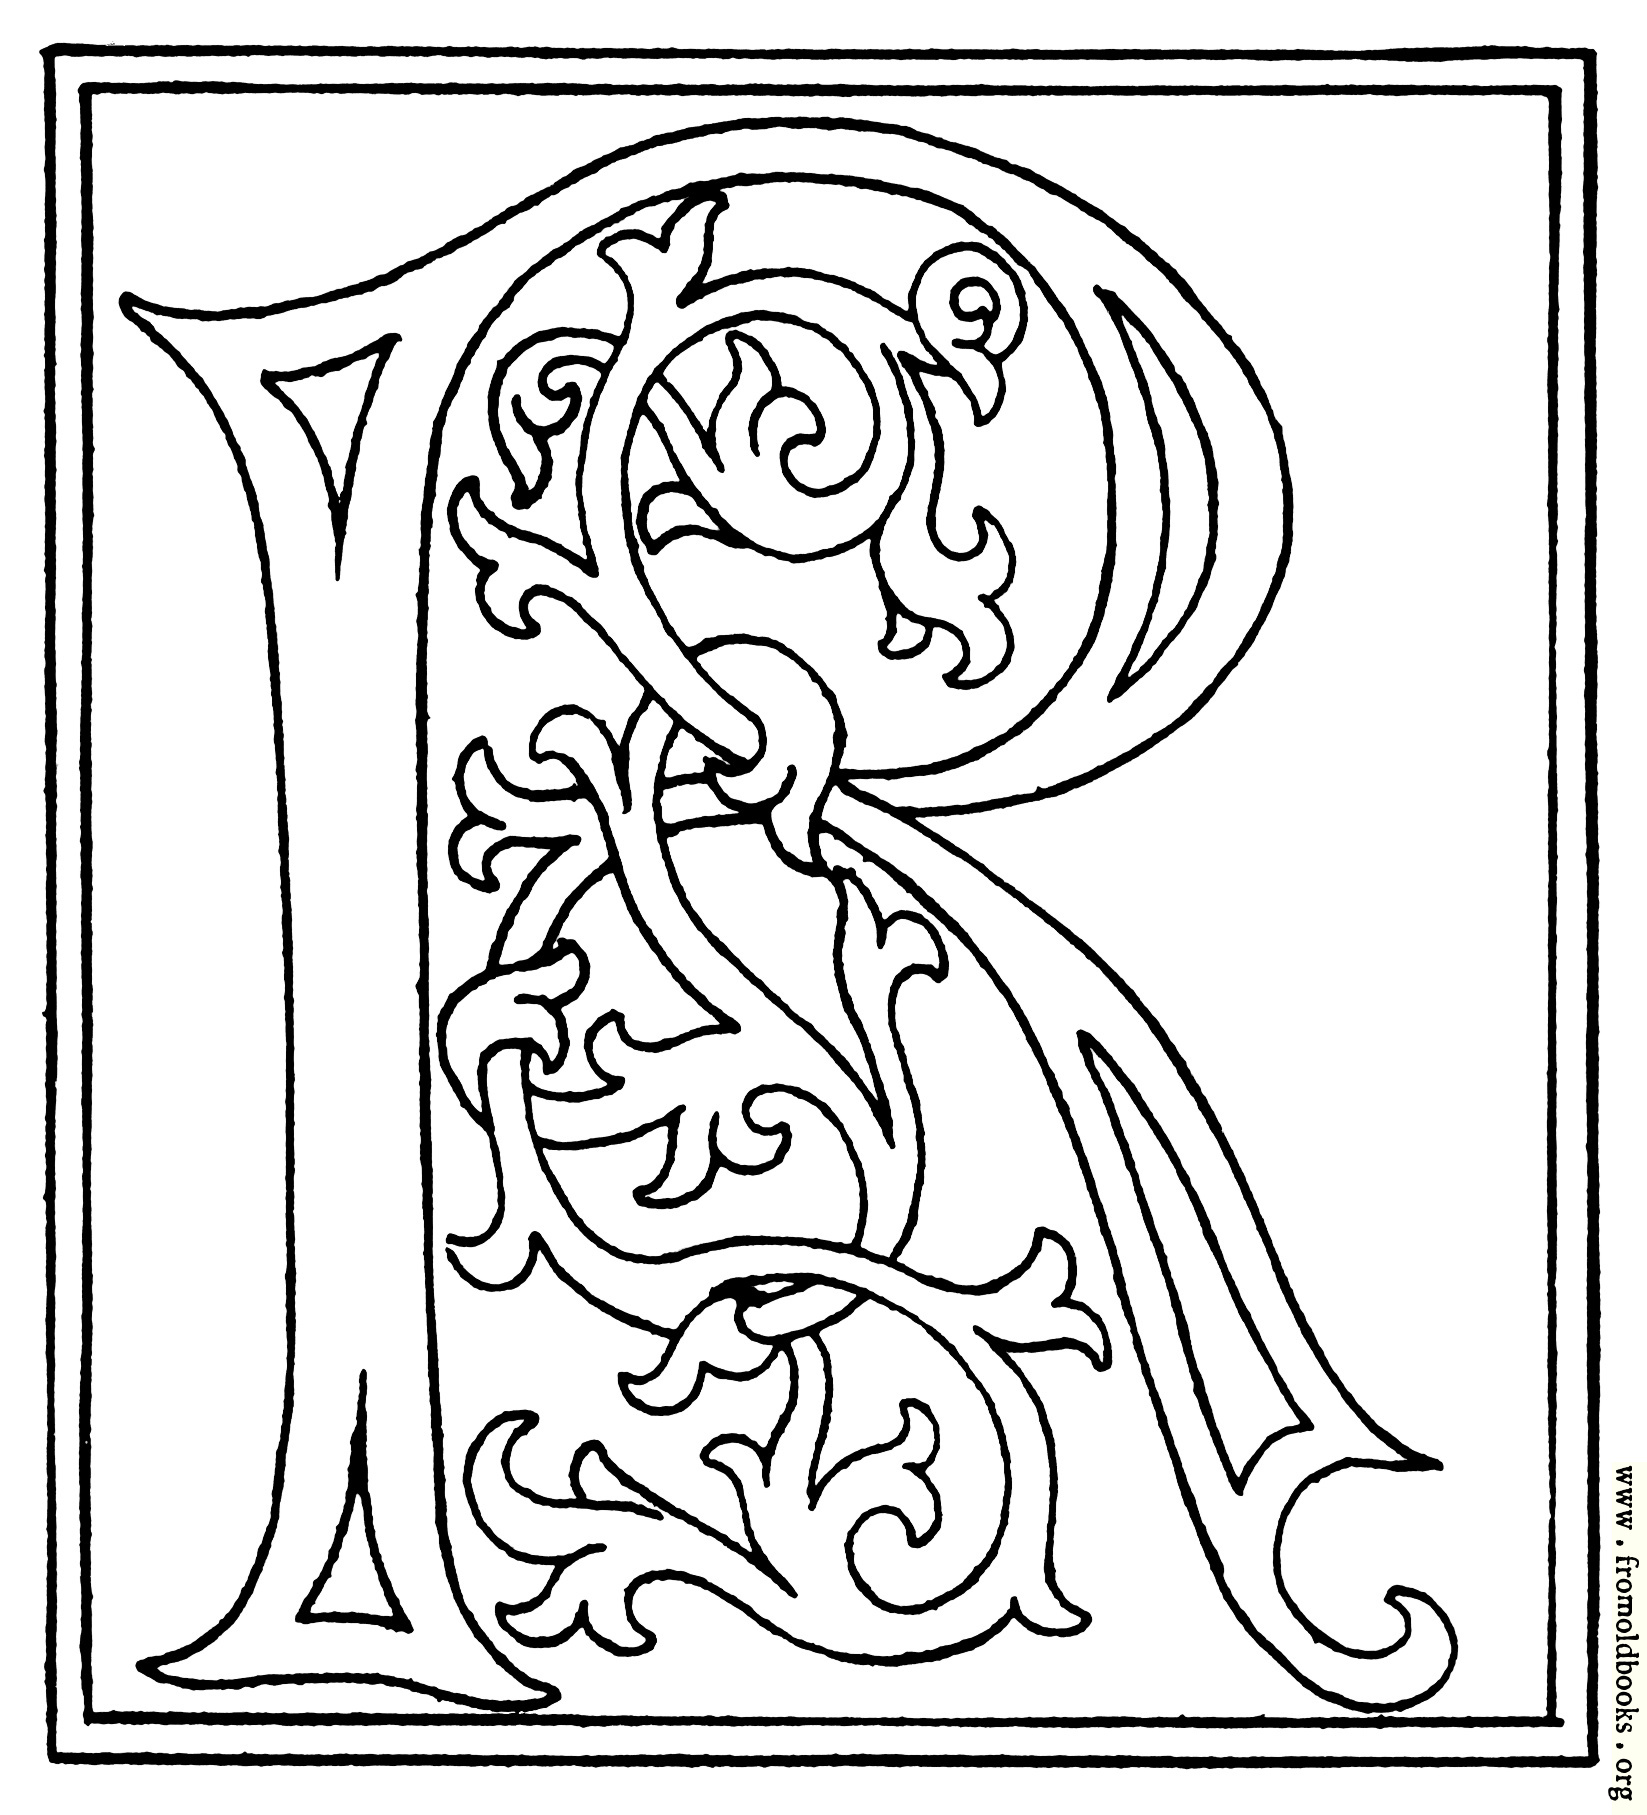 Clipart Initial Letter R From Late 15th Century Printed Book